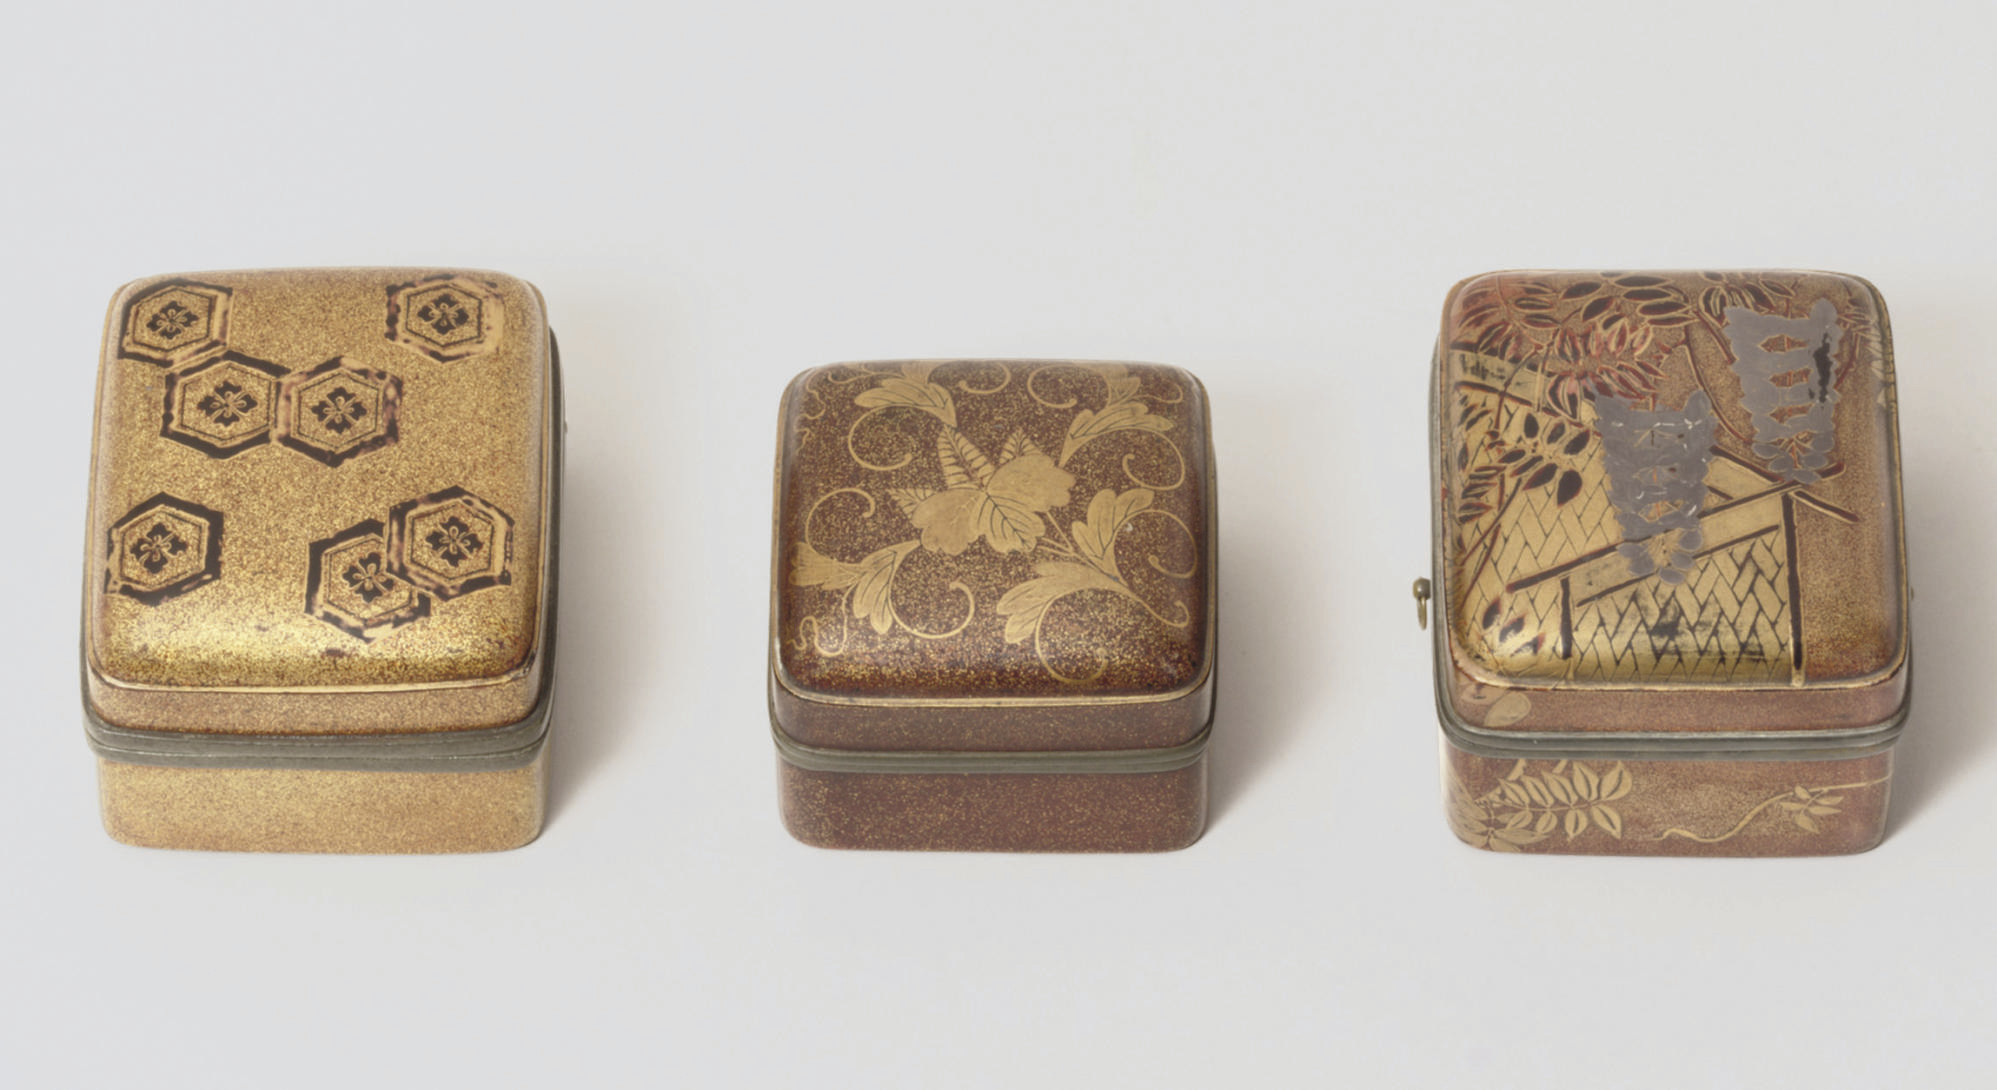 Three lacquer kobako [incense